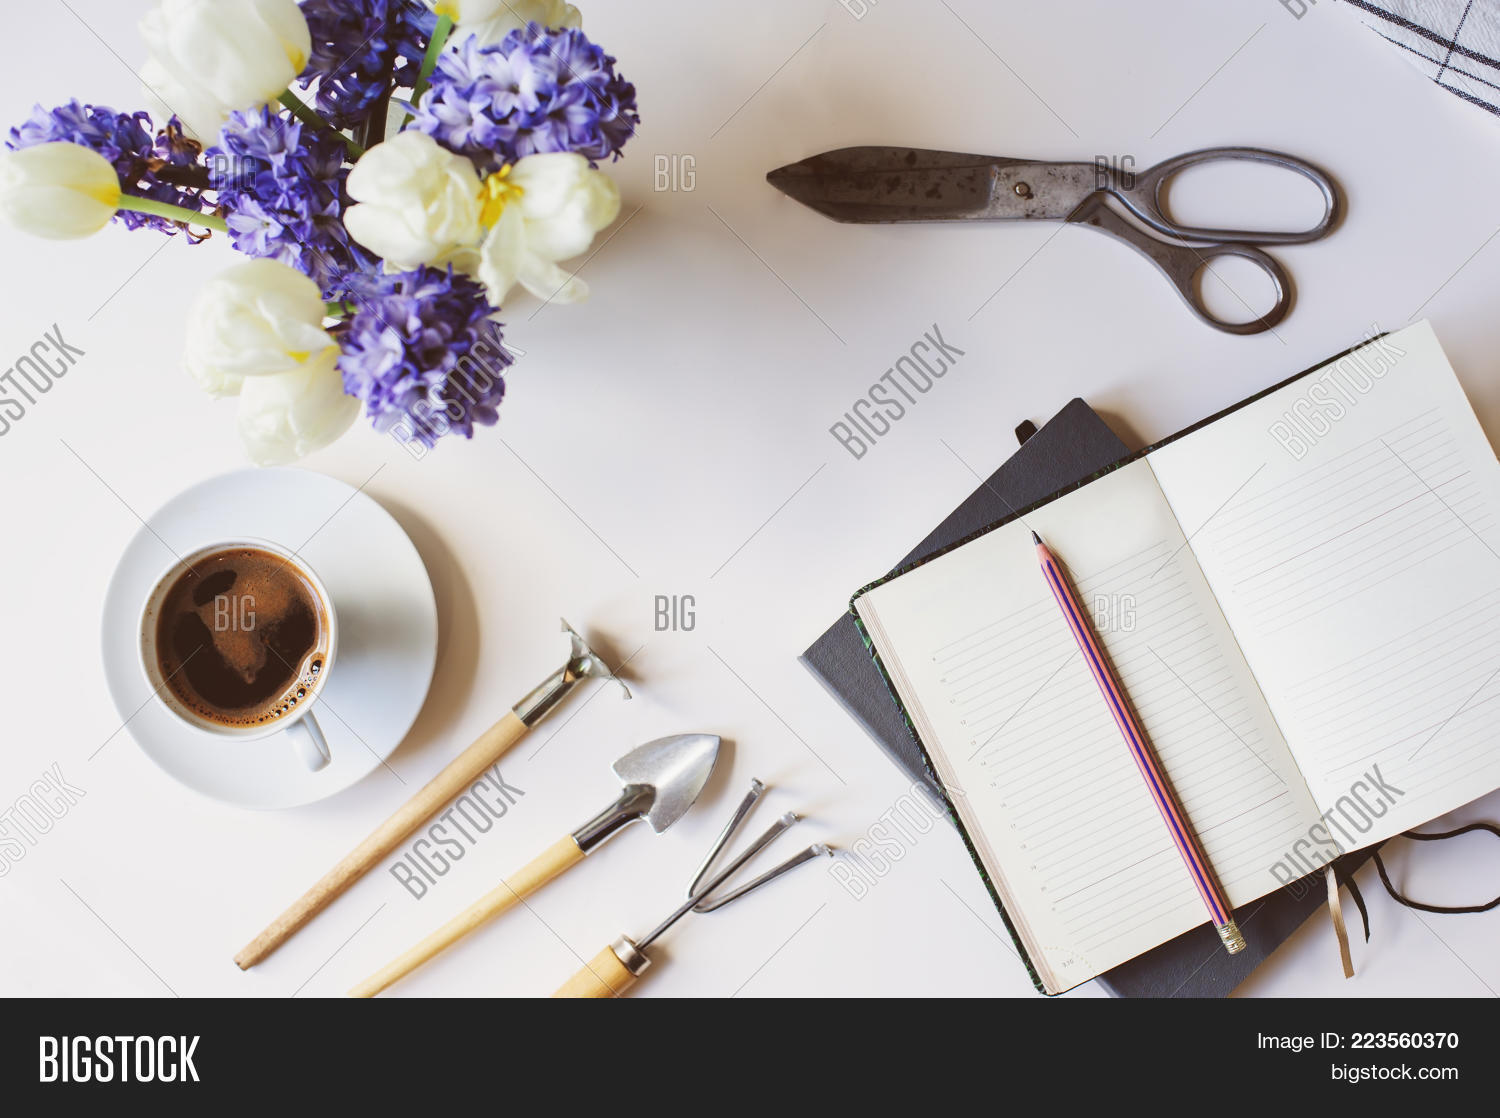 Spring gardener plan image photo free trial bigstock spring gardener plan or to do list on table with empty space on white background mightylinksfo